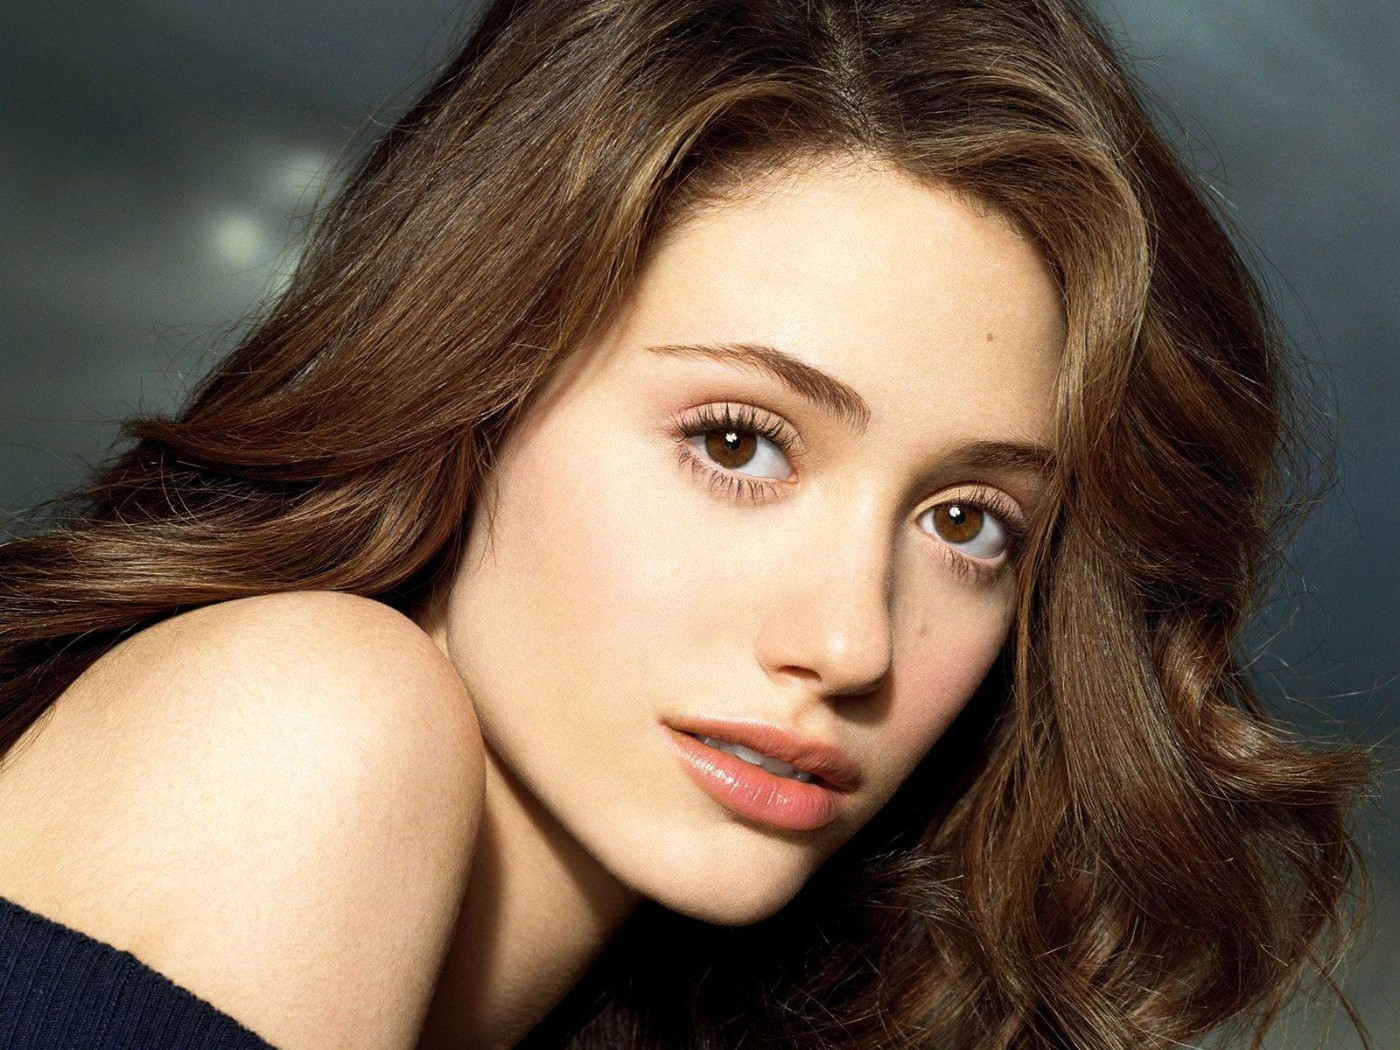 STARS WALLPAPER: Emmy Rossum Wallpapers Free Download Emmy Rossum Wallpaper